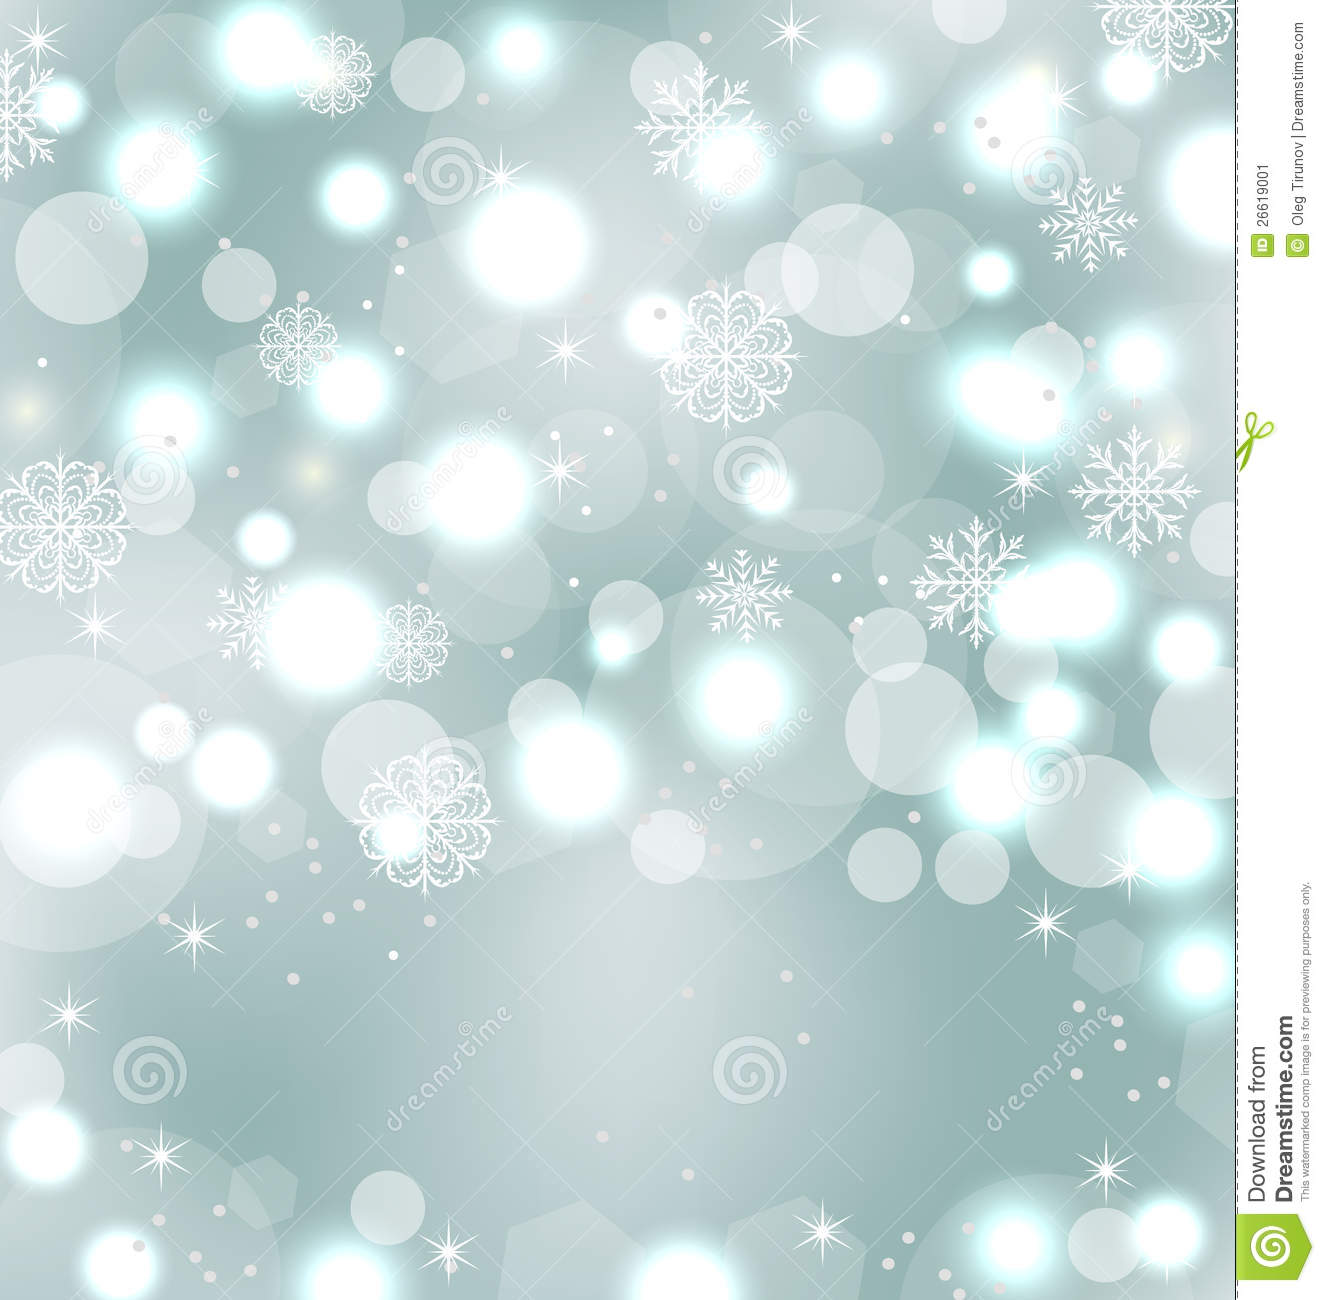 Christmas Cute Wallpaper With Sparkle